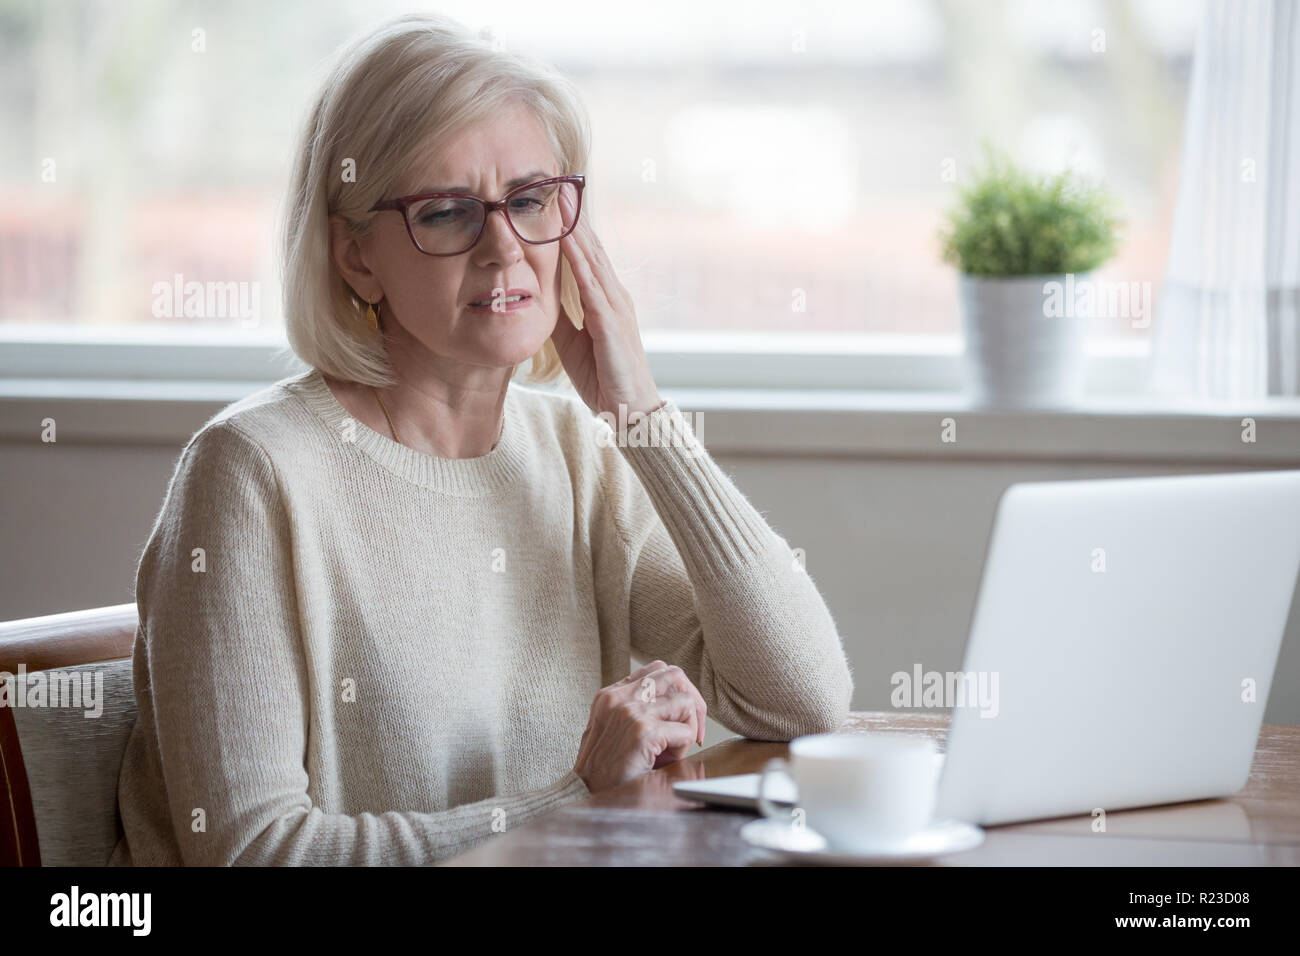 Upset aged woman using laptop at home suffering from headache, tired senior female massaging temples having severe pain or blurry vision, exhausted el Stock Photo